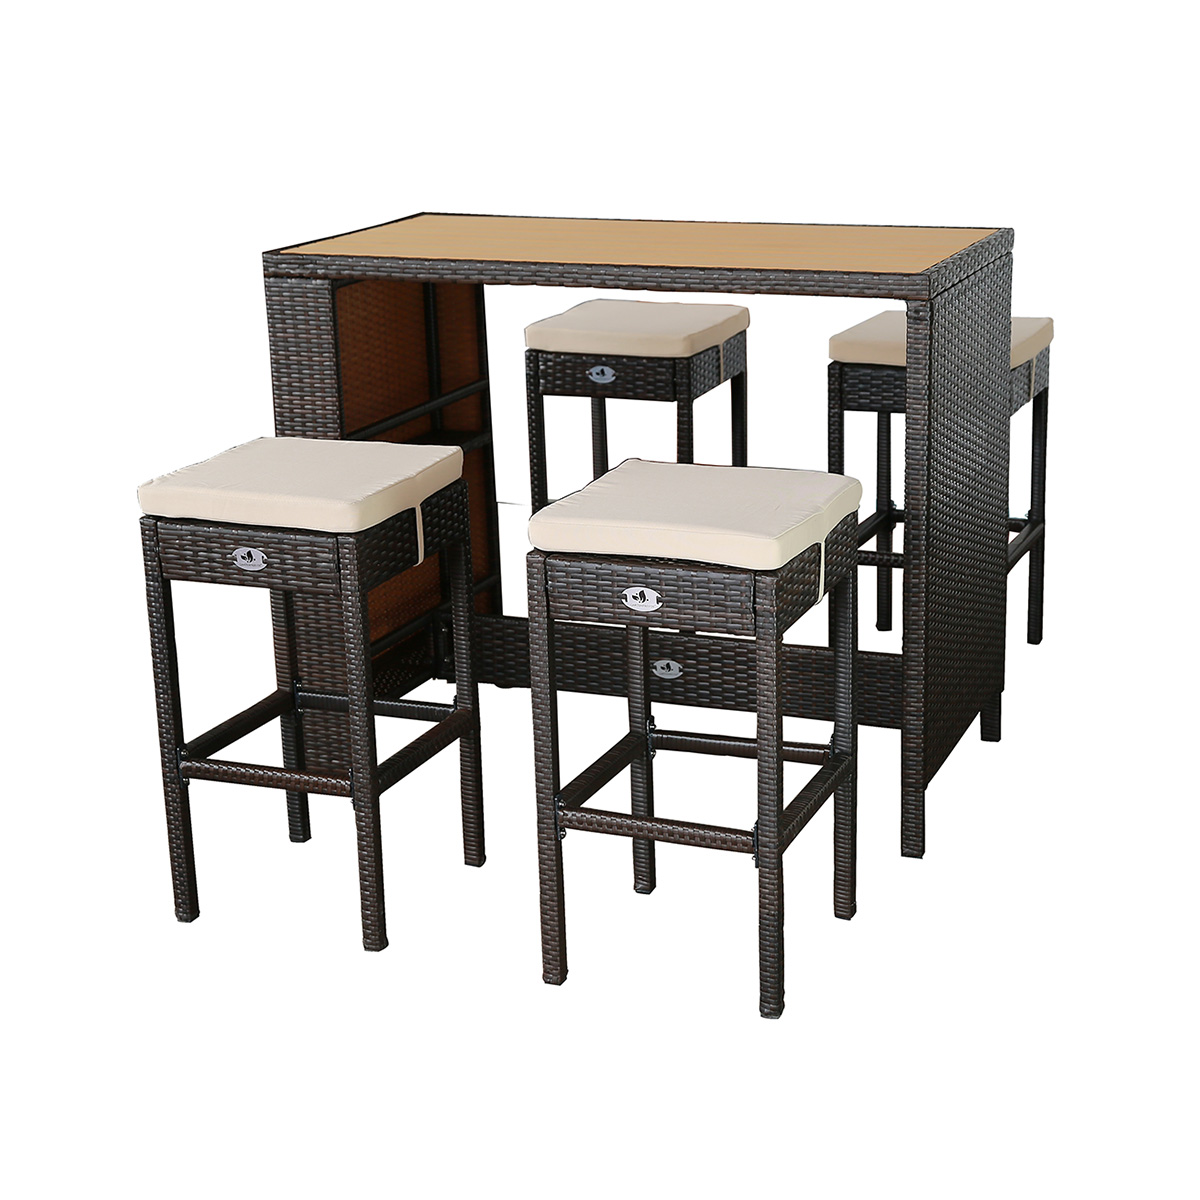 polyrattan bar sitztheke mit wpc tischplatte 4 hocker bicolour braun gartenfreude. Black Bedroom Furniture Sets. Home Design Ideas